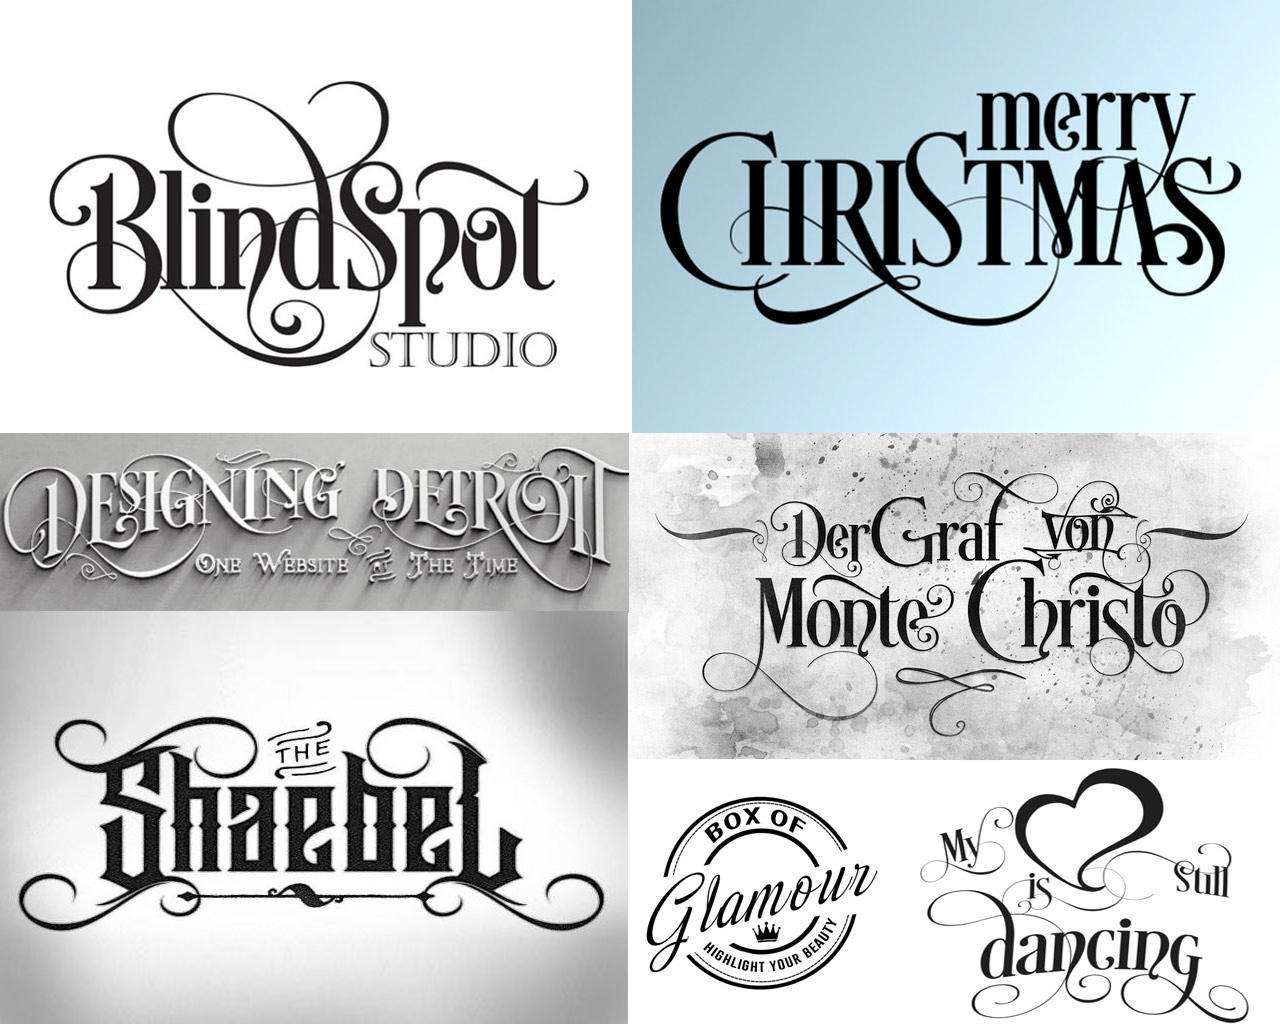 Customized Calligraphy / Typography Design With Graphic Elements by scarab13 - 110319